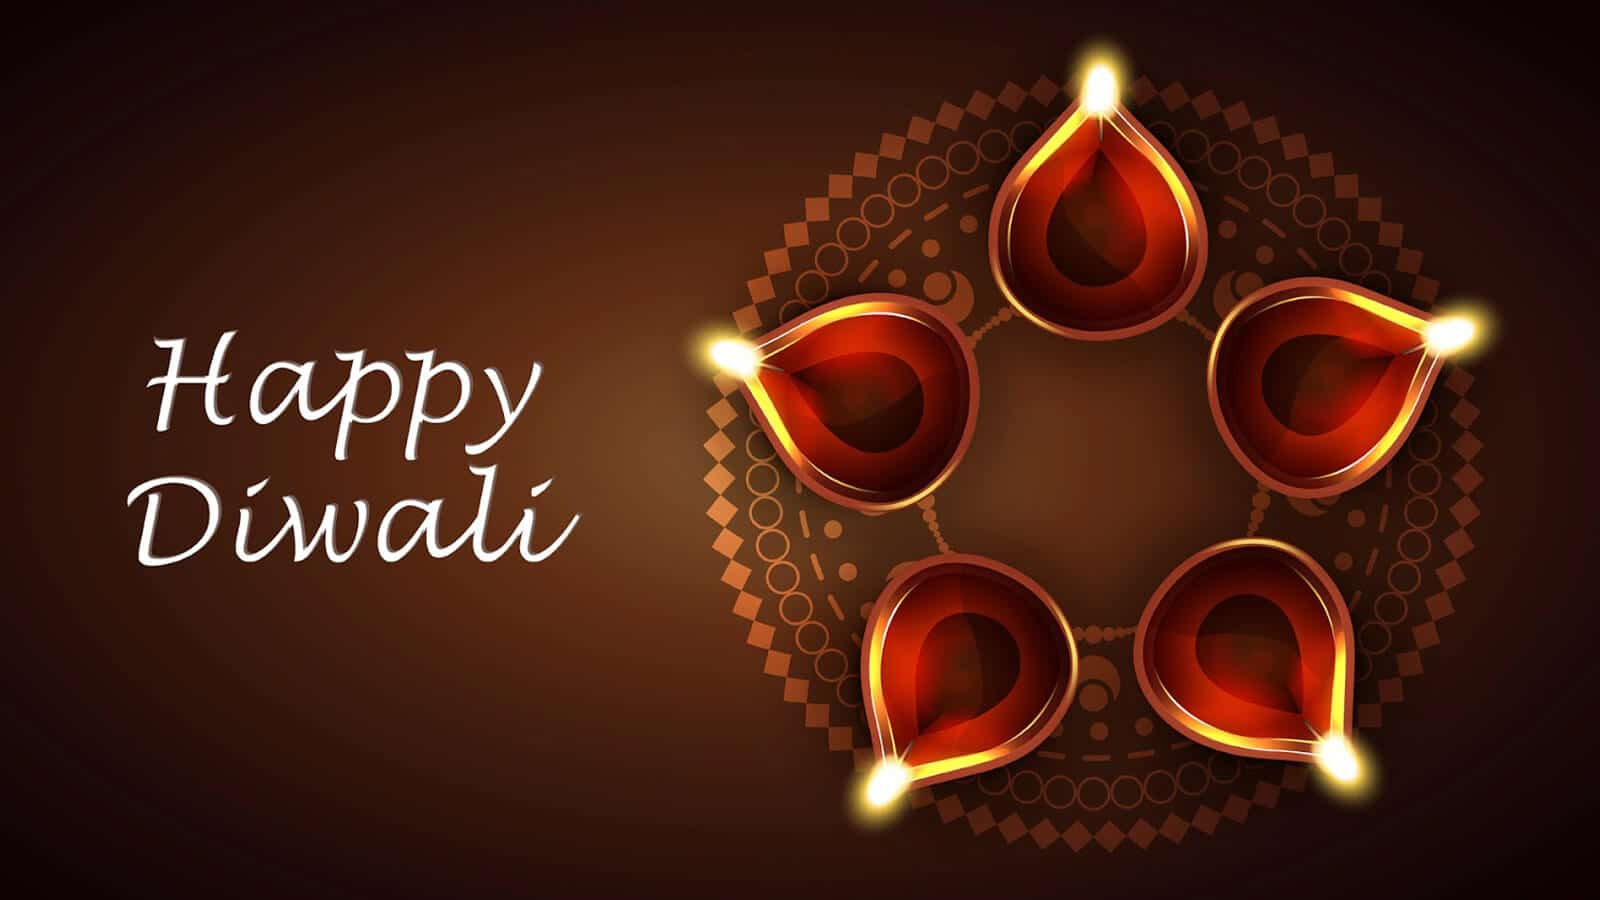 Happy Diwali Messages Free Hd Images